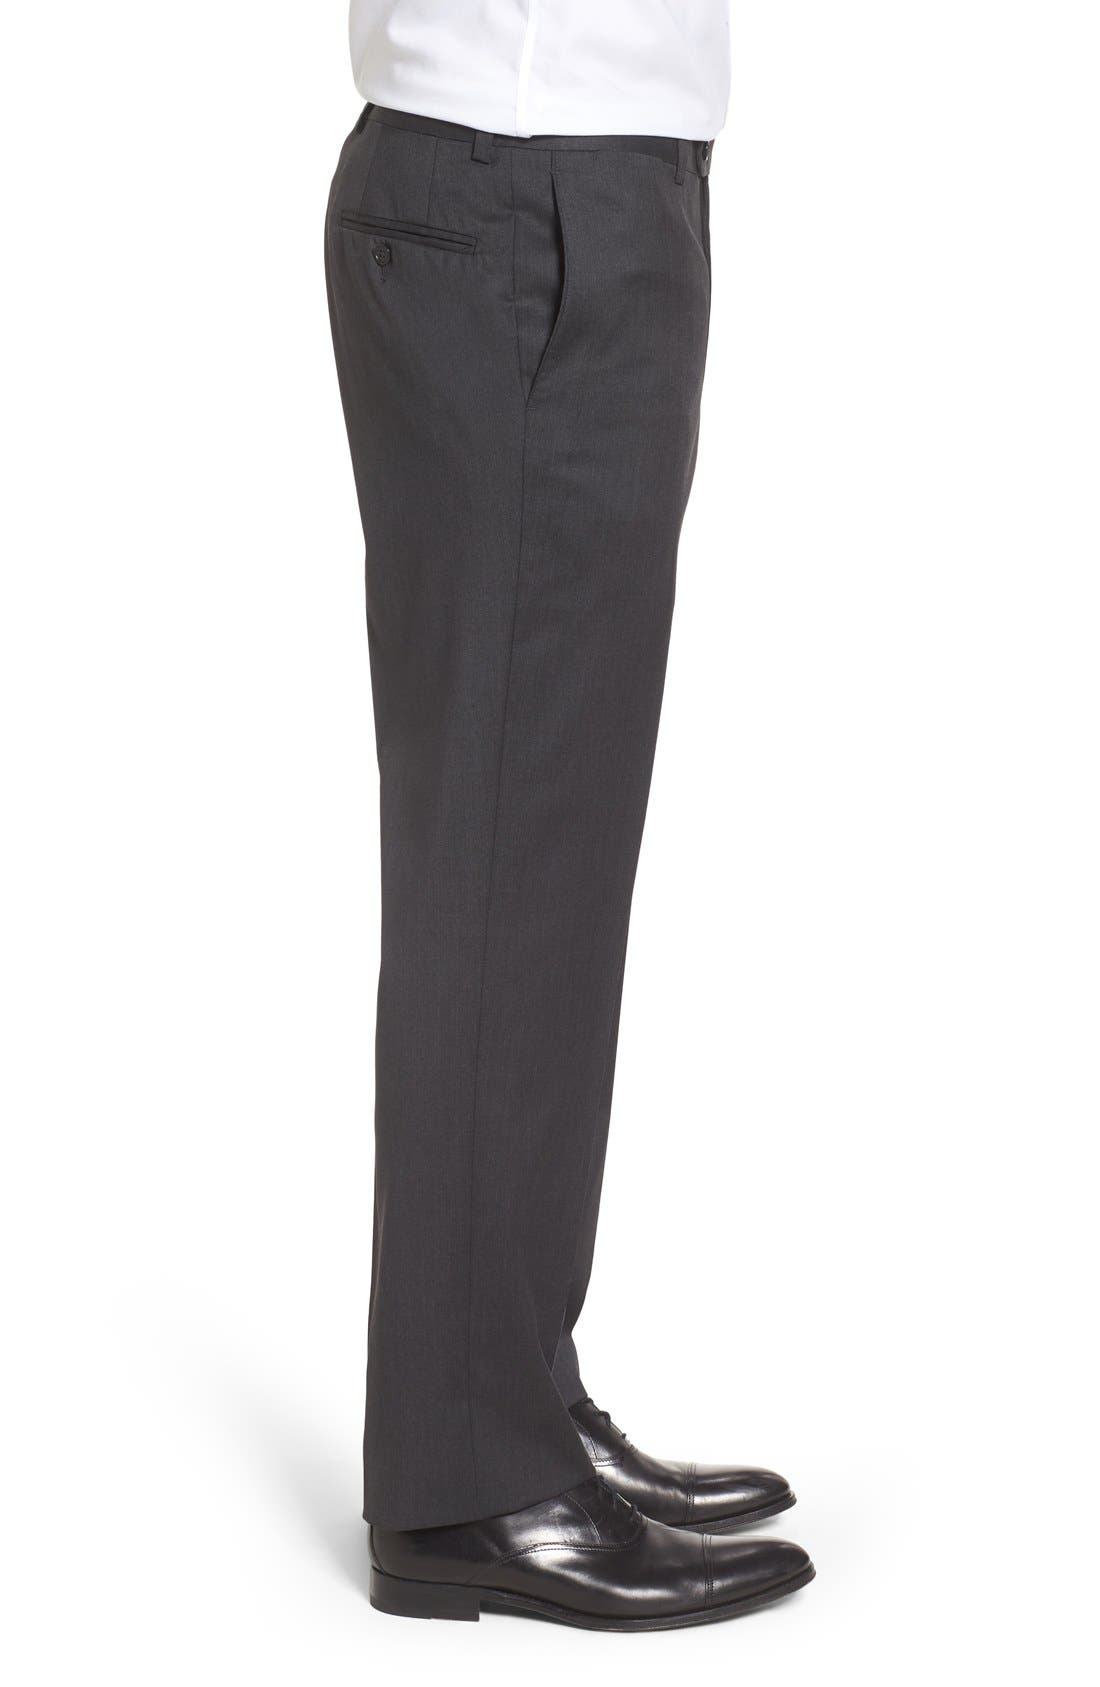 RIVIERA,                             Flat Front Solid Wool Trousers,                             Alternate thumbnail 4, color,                             010